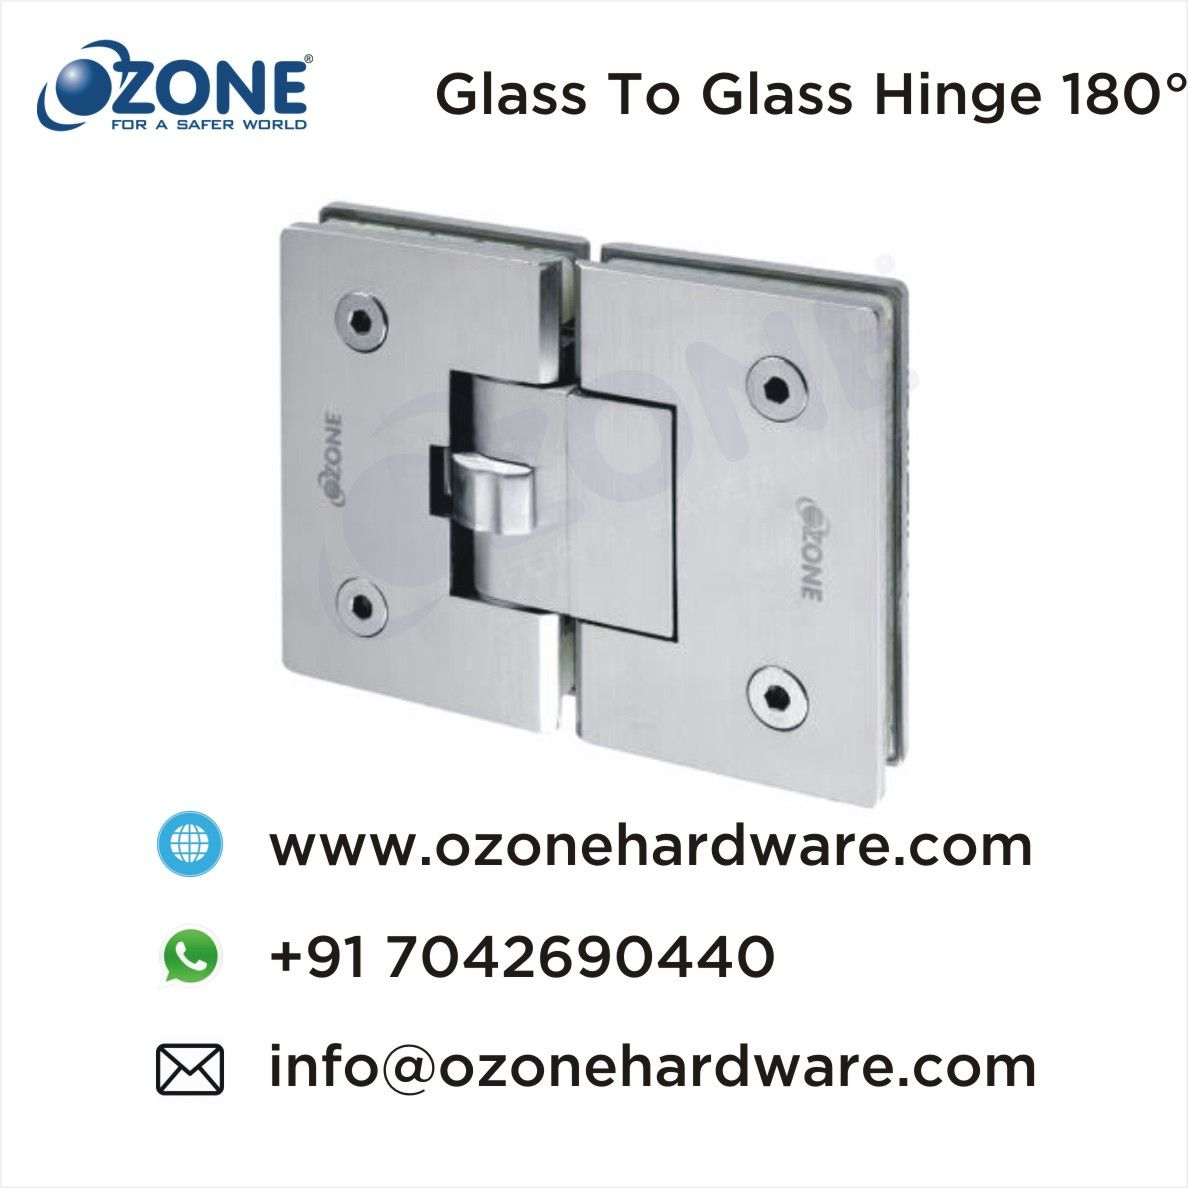 Glass To Glass Hinge 180 Partition Hinges Bathroom Door Hinges Partition Wall Hardware Global Bathroom Partition H Glass Hinges Hinges Bathroom Partitions